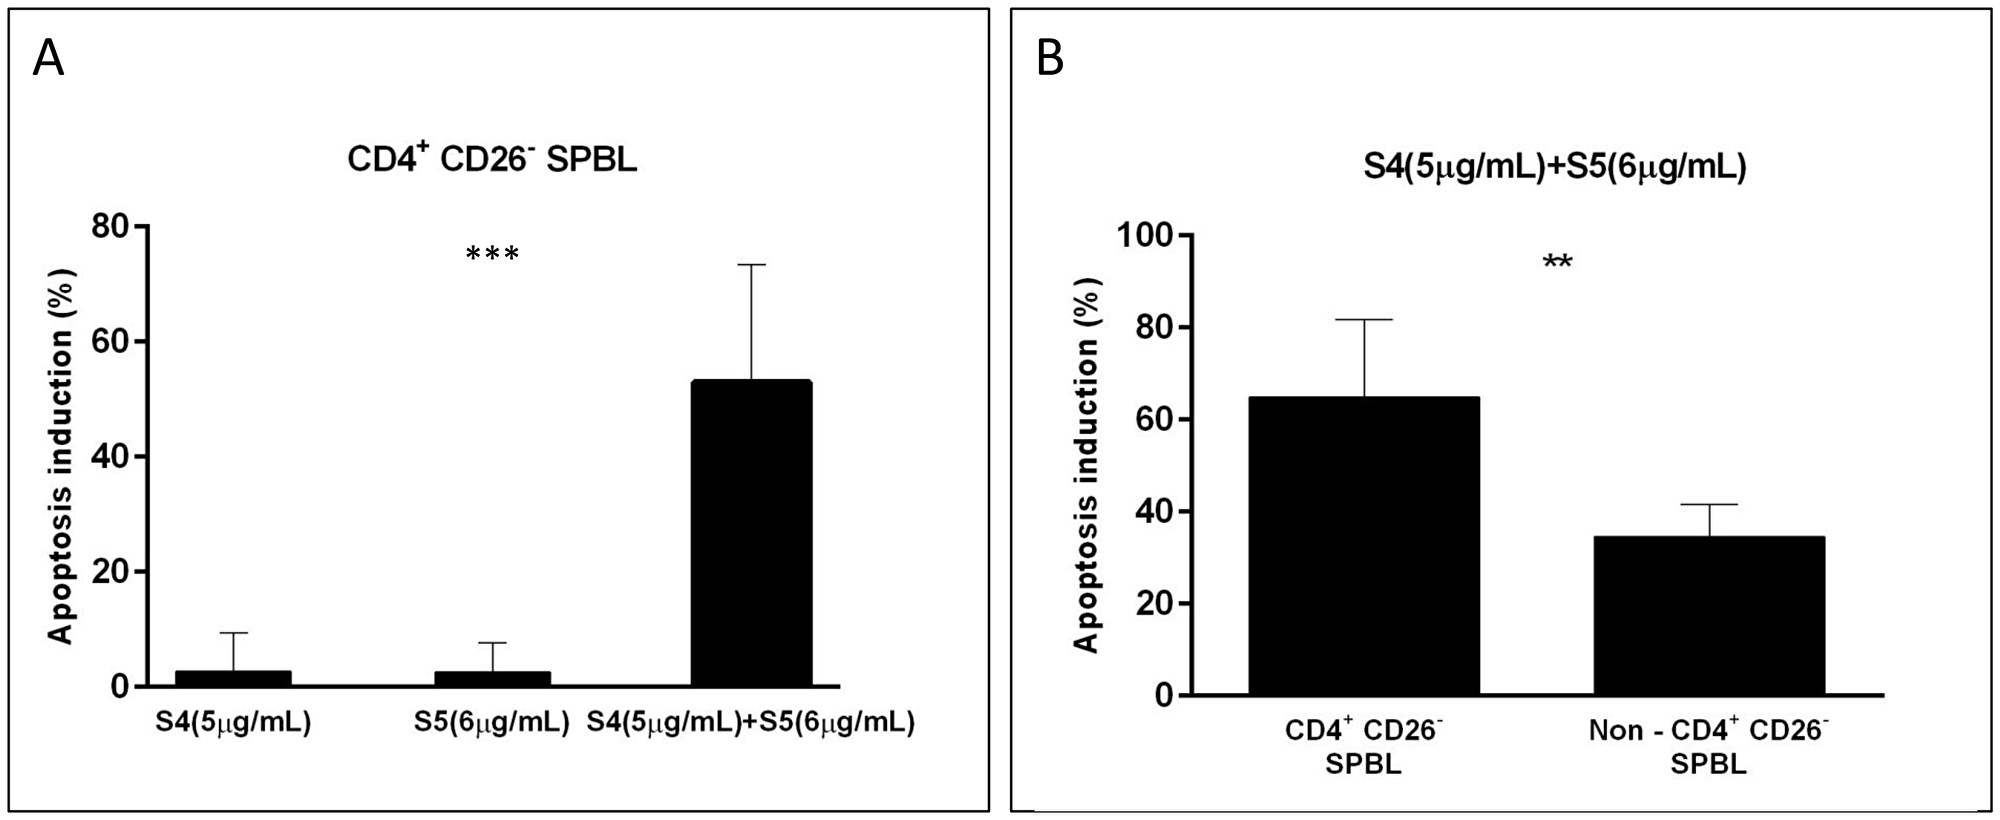 Apoptosis induction in PBL from Sézary patients following treatment with S4, S5, and S4+S5.